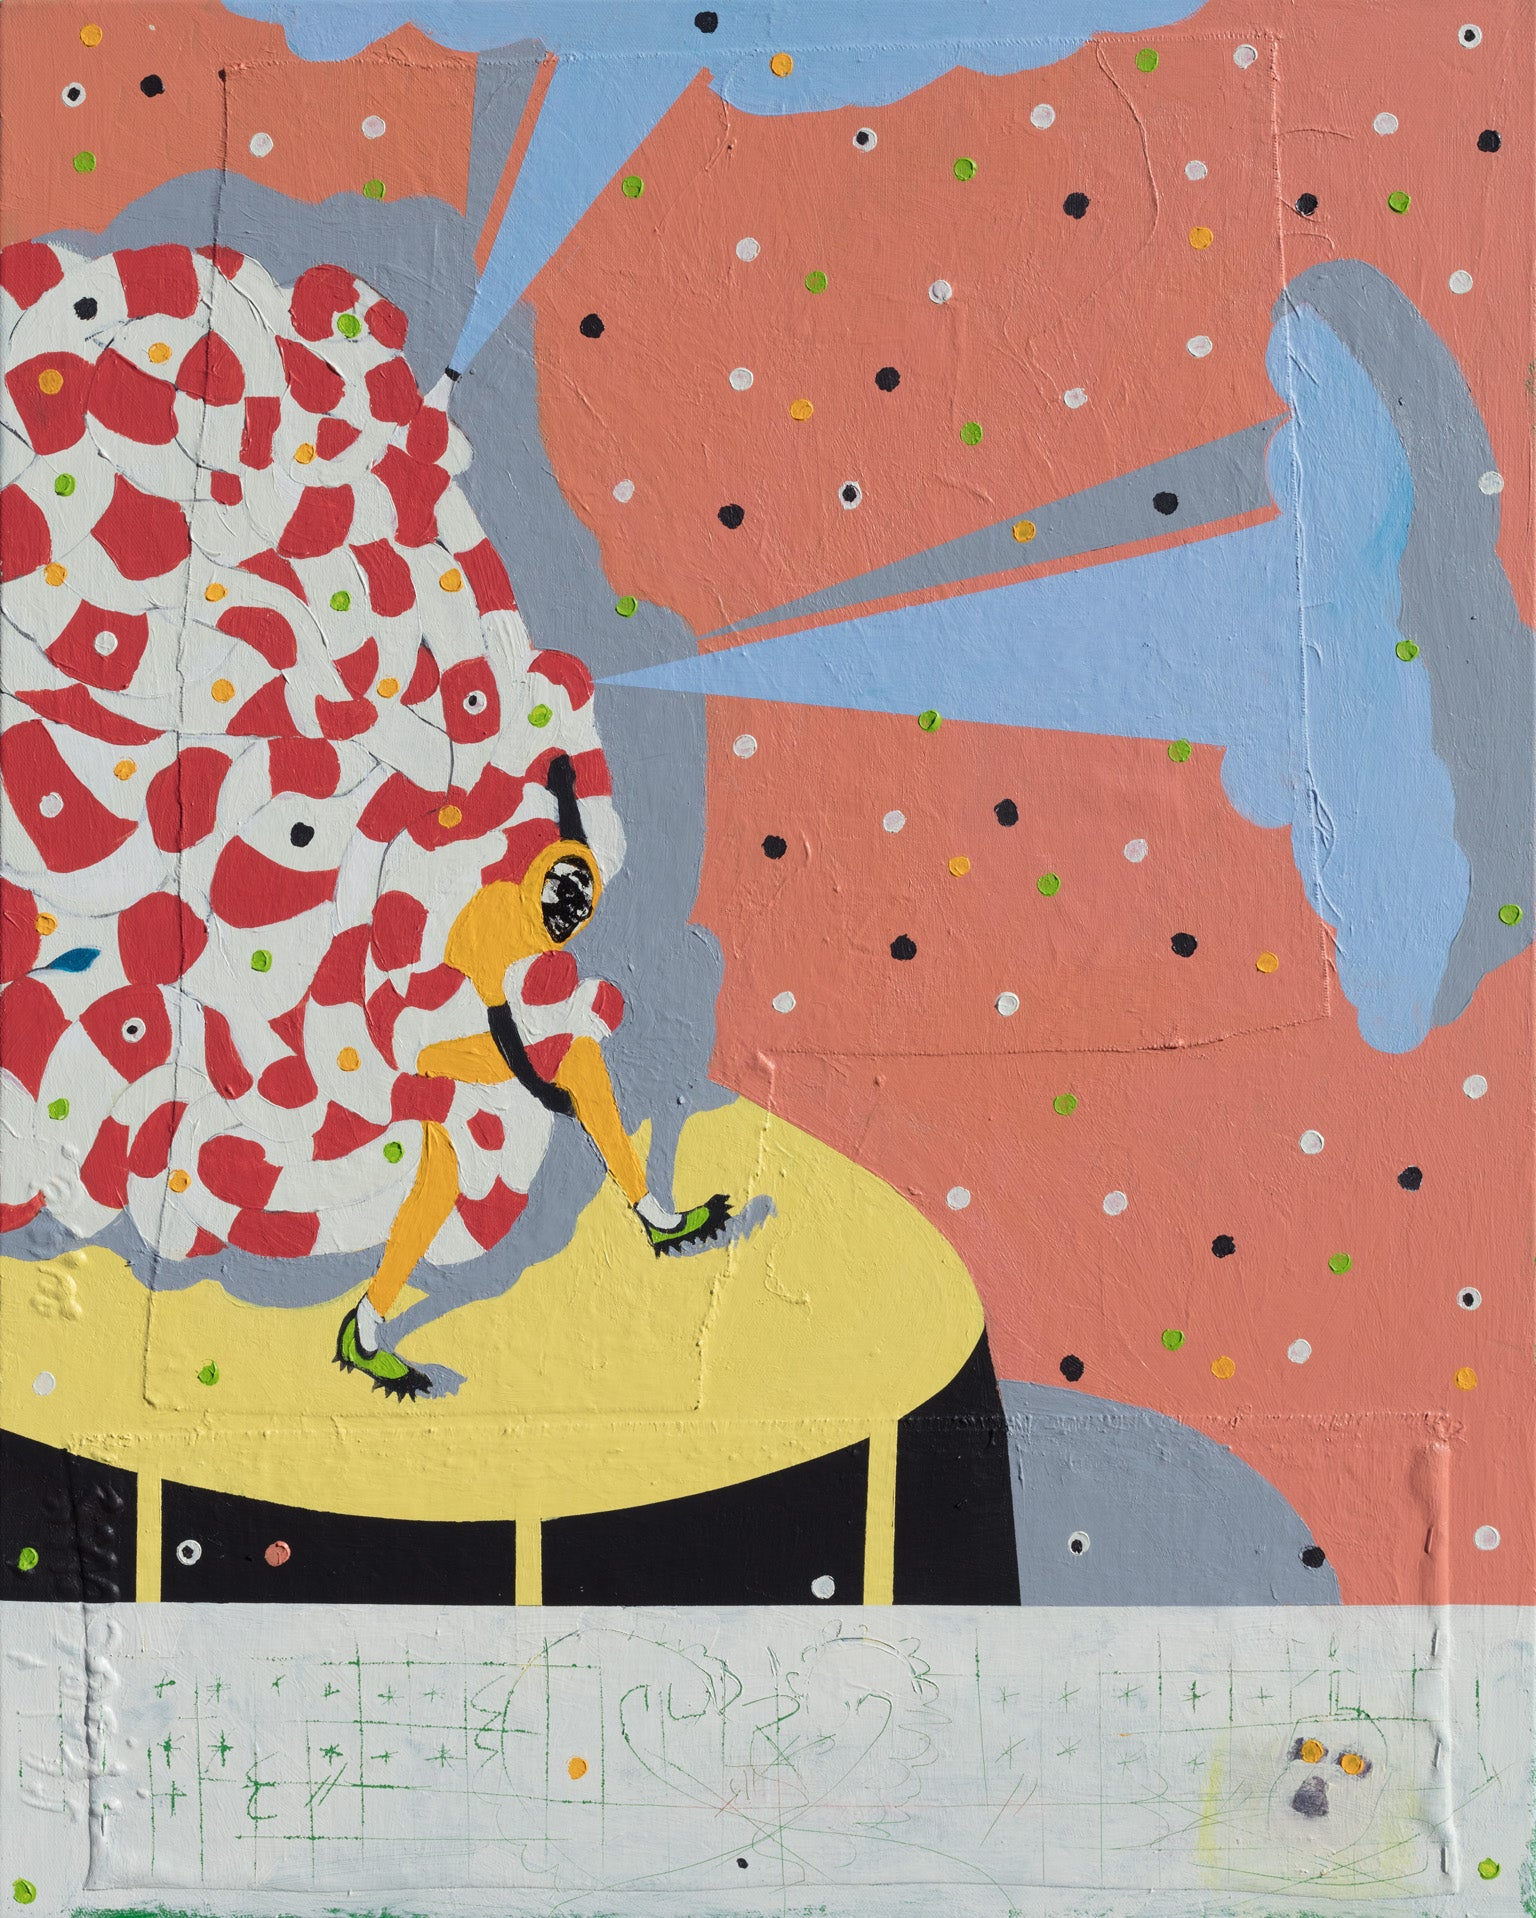 Mumbo Jumbo NYC#5 - Figurative Painting with Red, Pink, Blue, and Yellow Colors